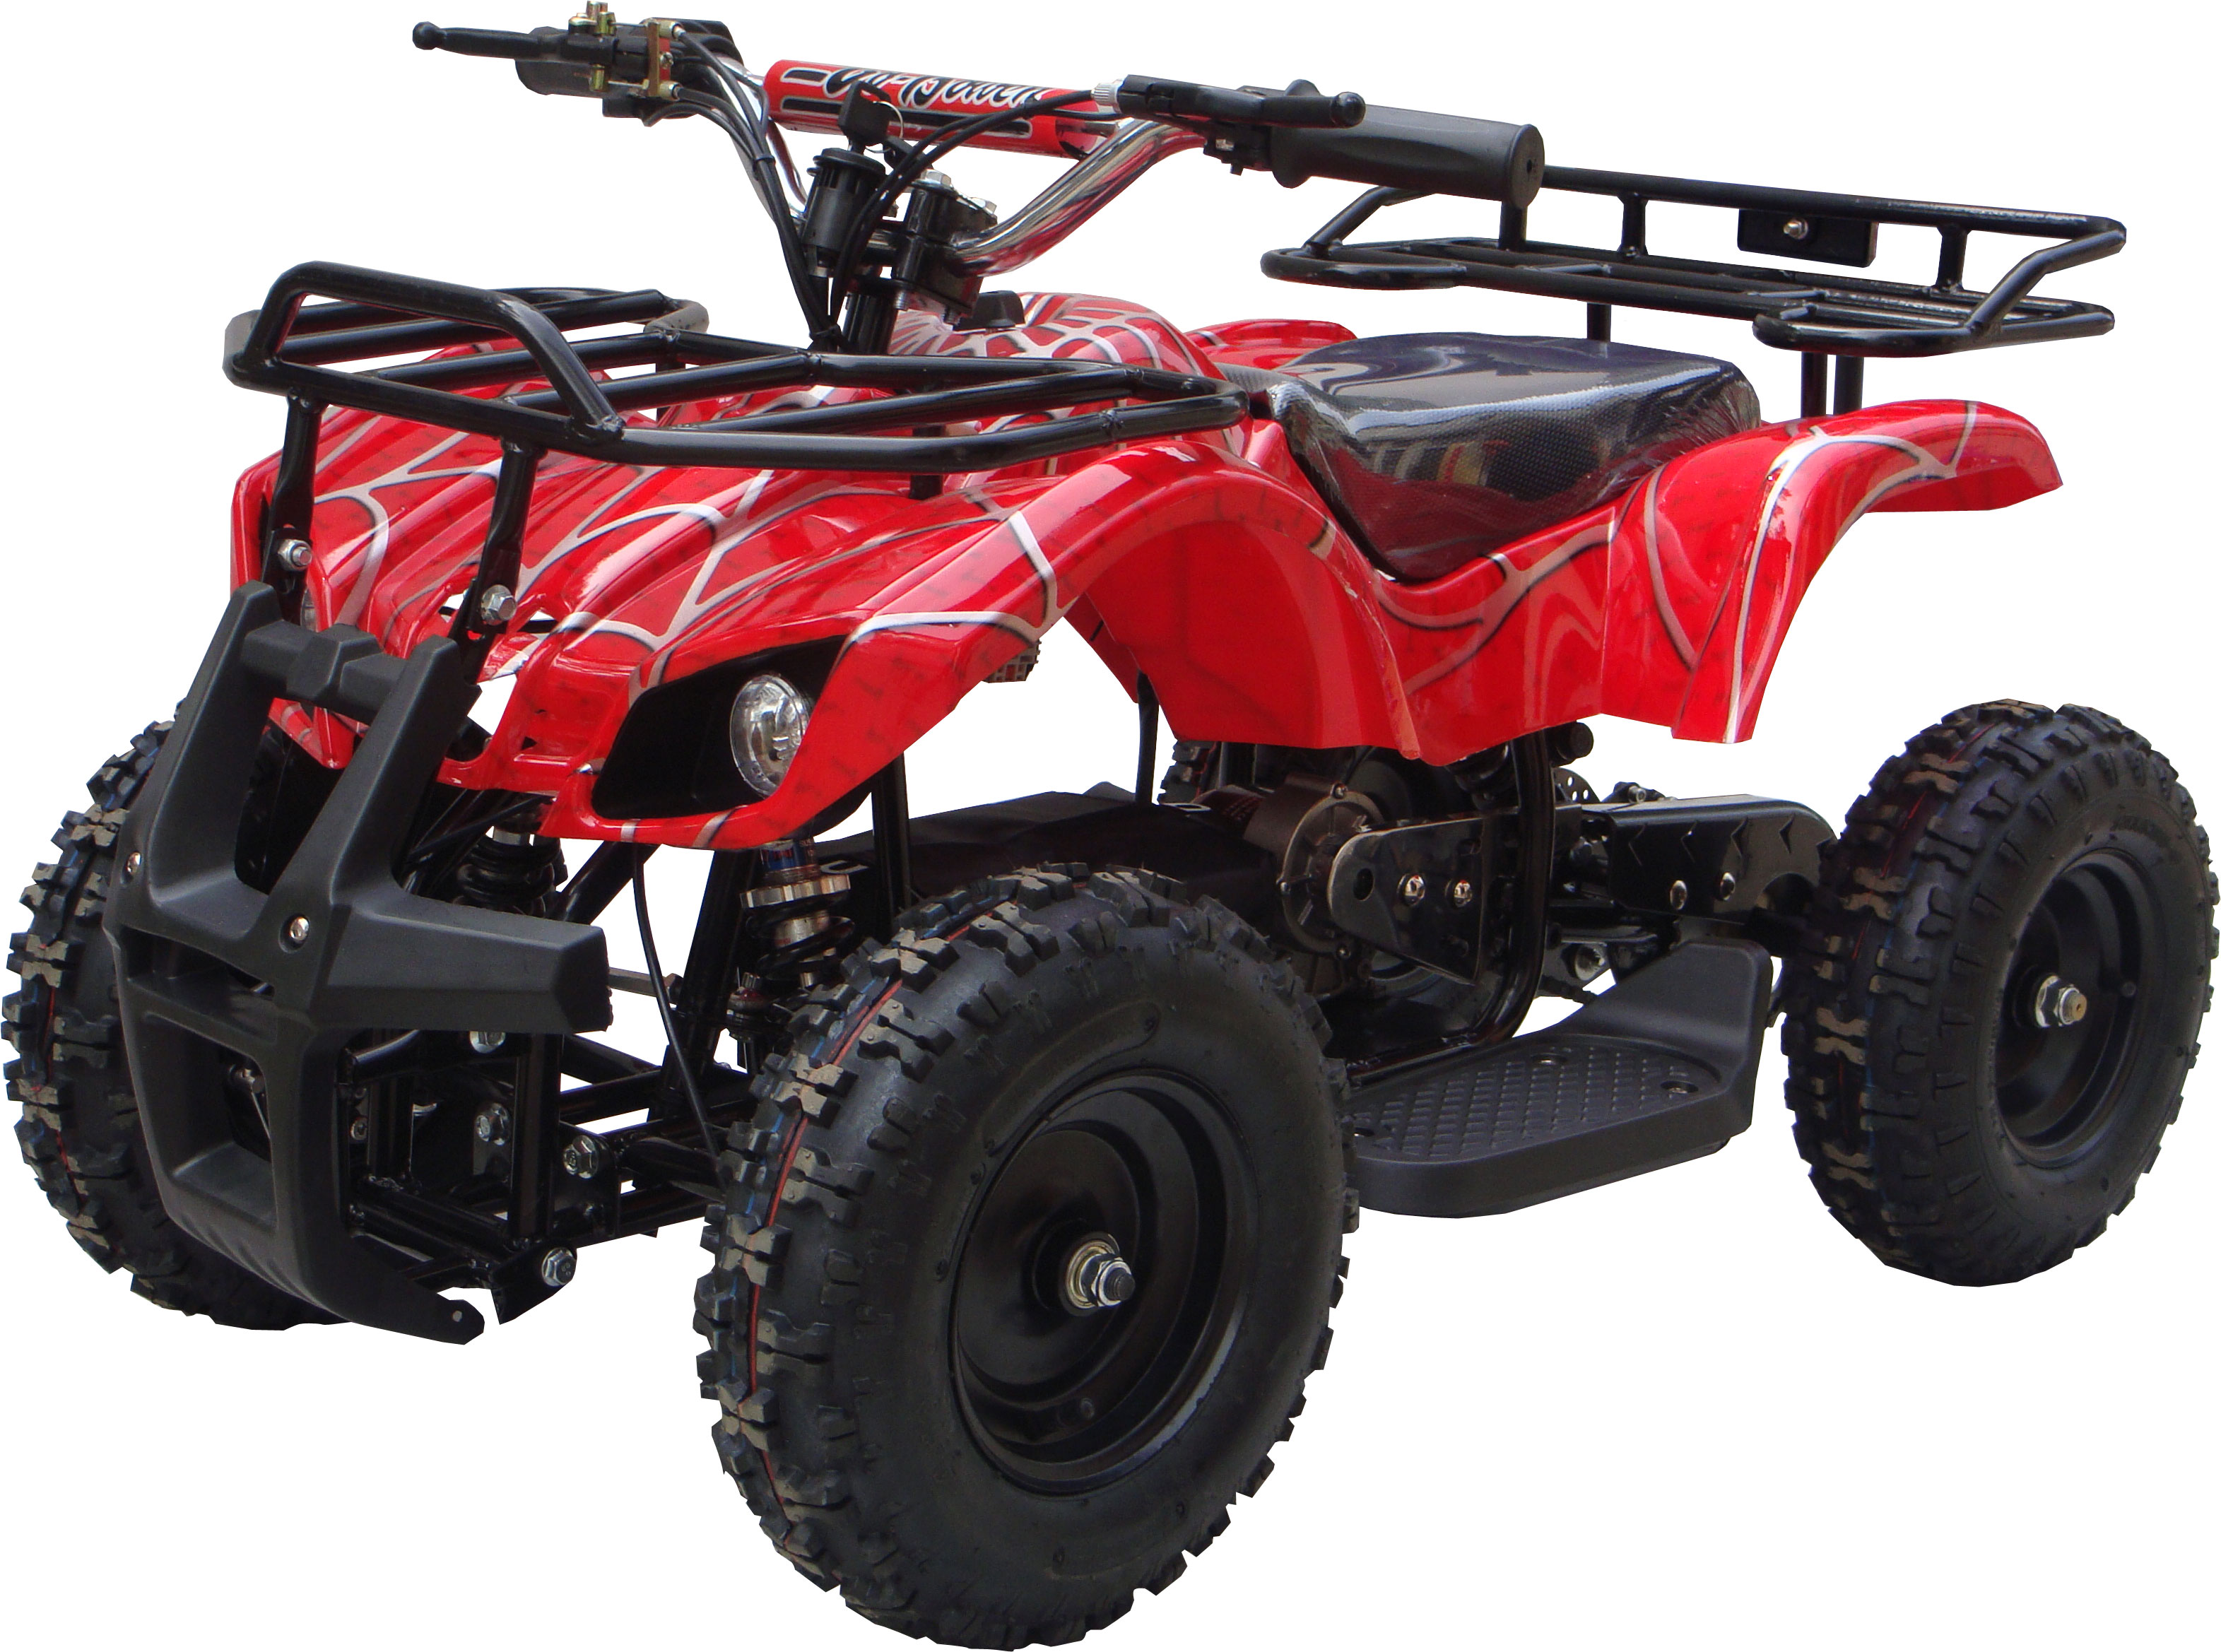 GO BOWEN Children's Sonora 350 Watt Electric ATV